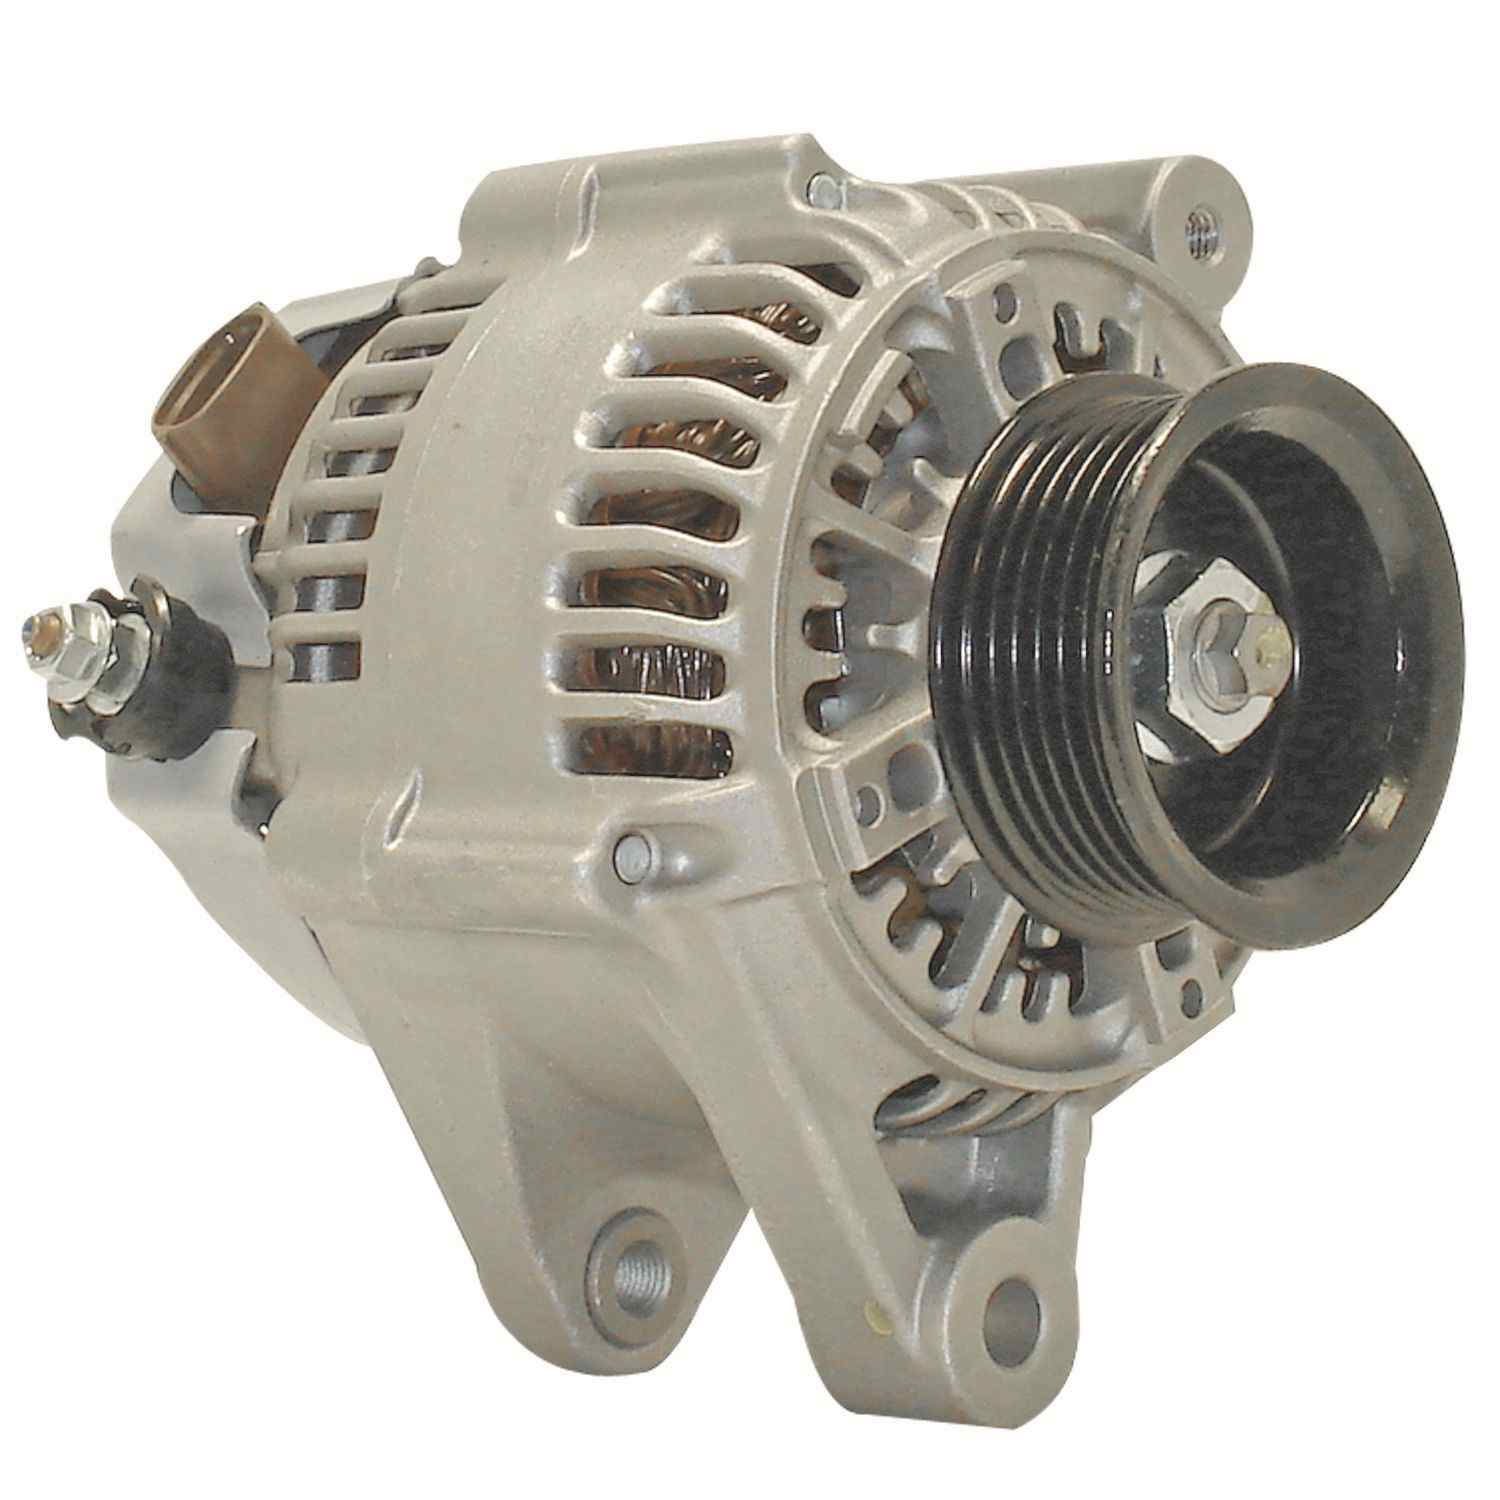 ACDELCO GOLD/PROFESSIONAL - Reman Alternator - DCC 334-1226A